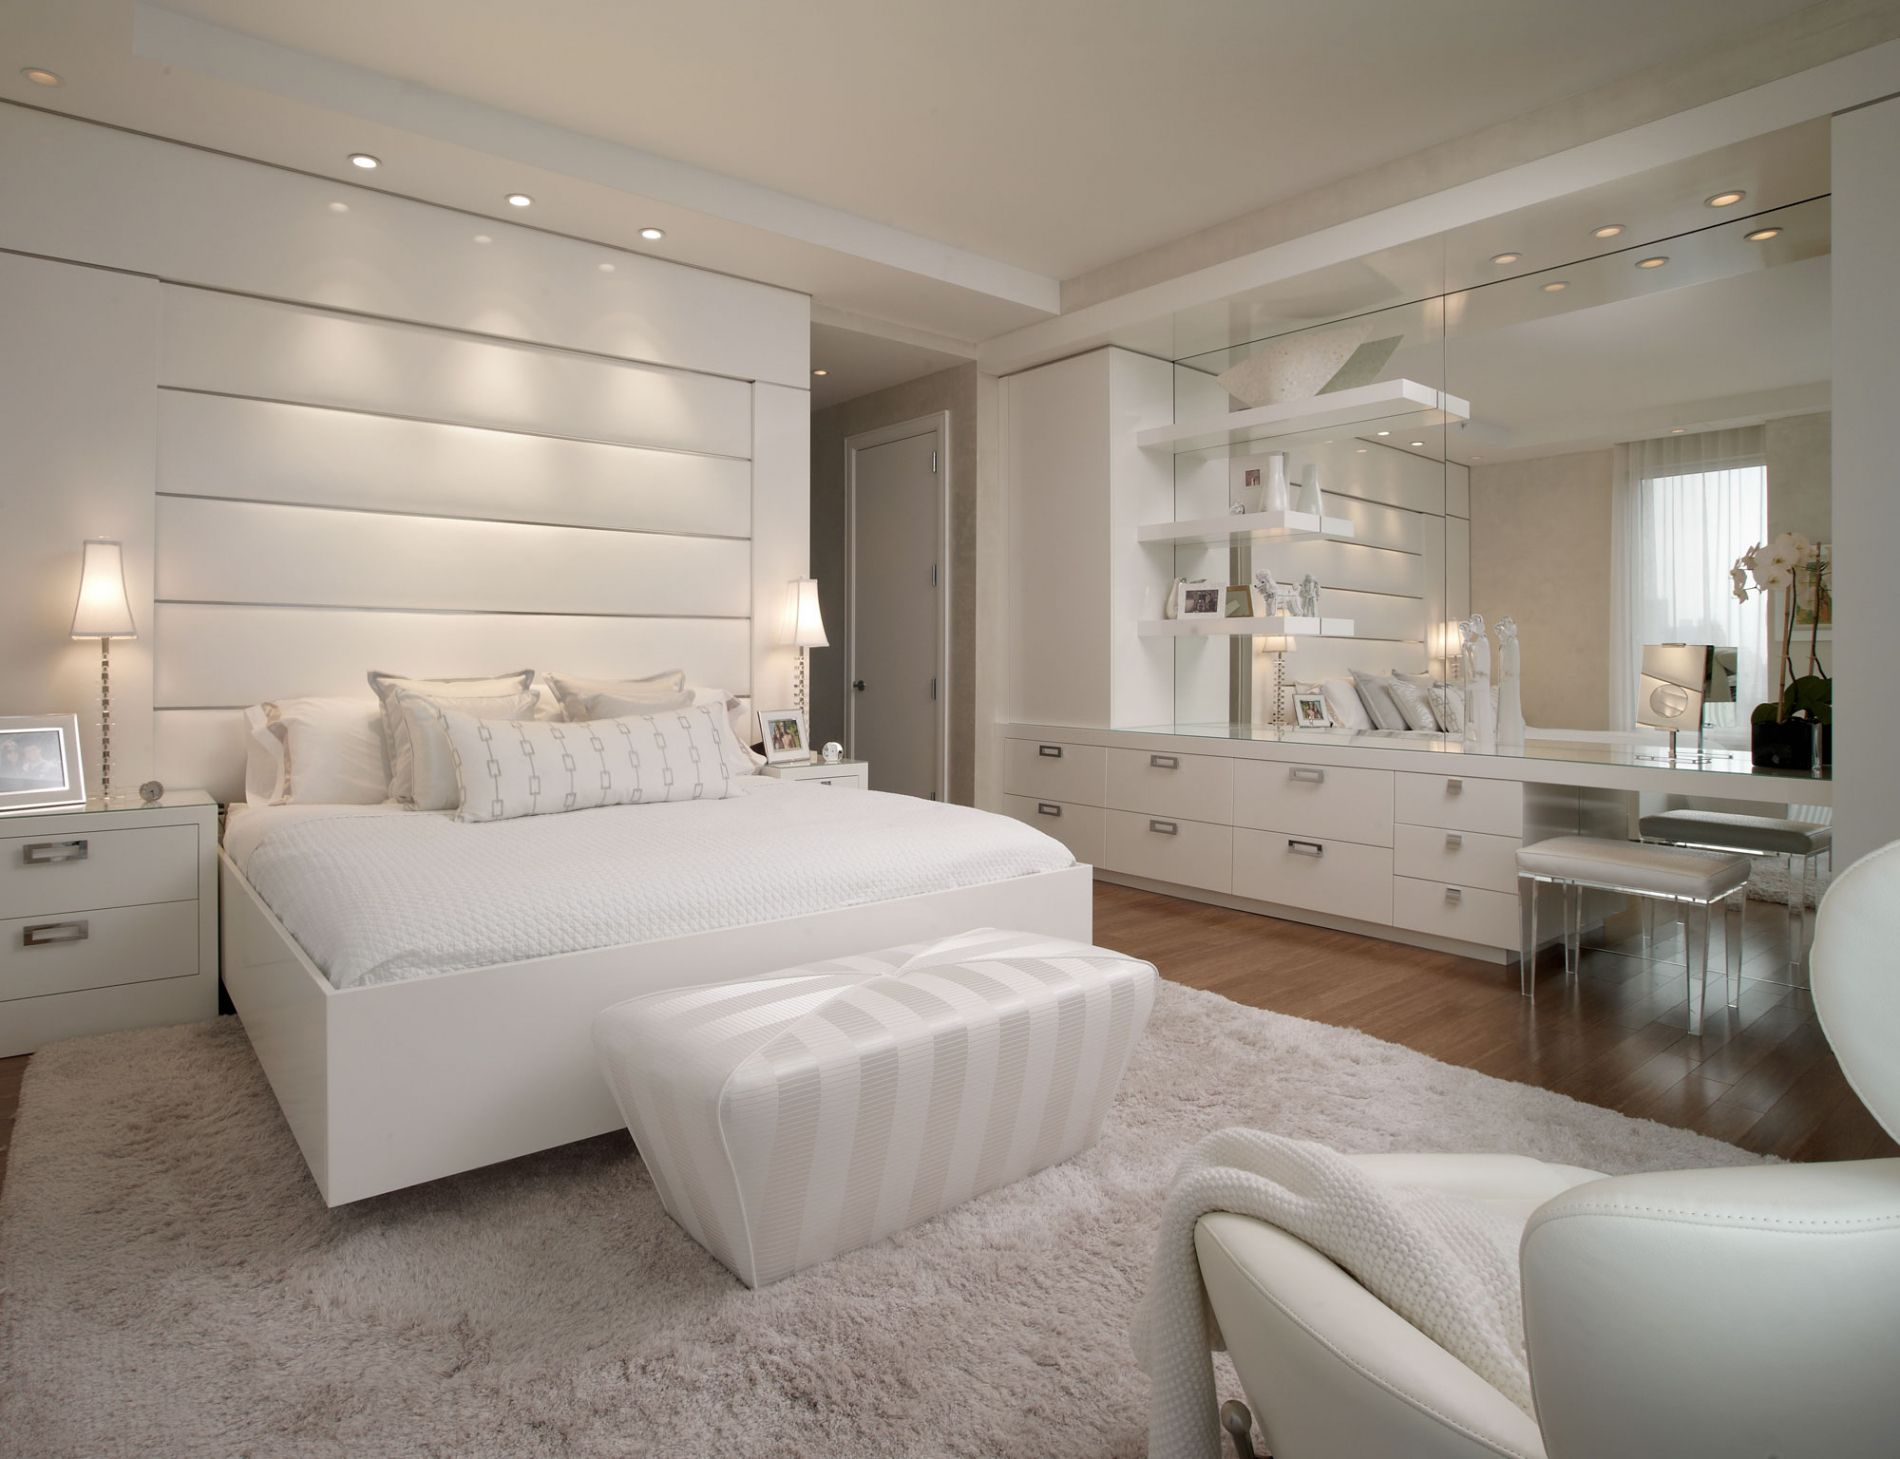 Glamour Bedroom Design Ideas 33 In